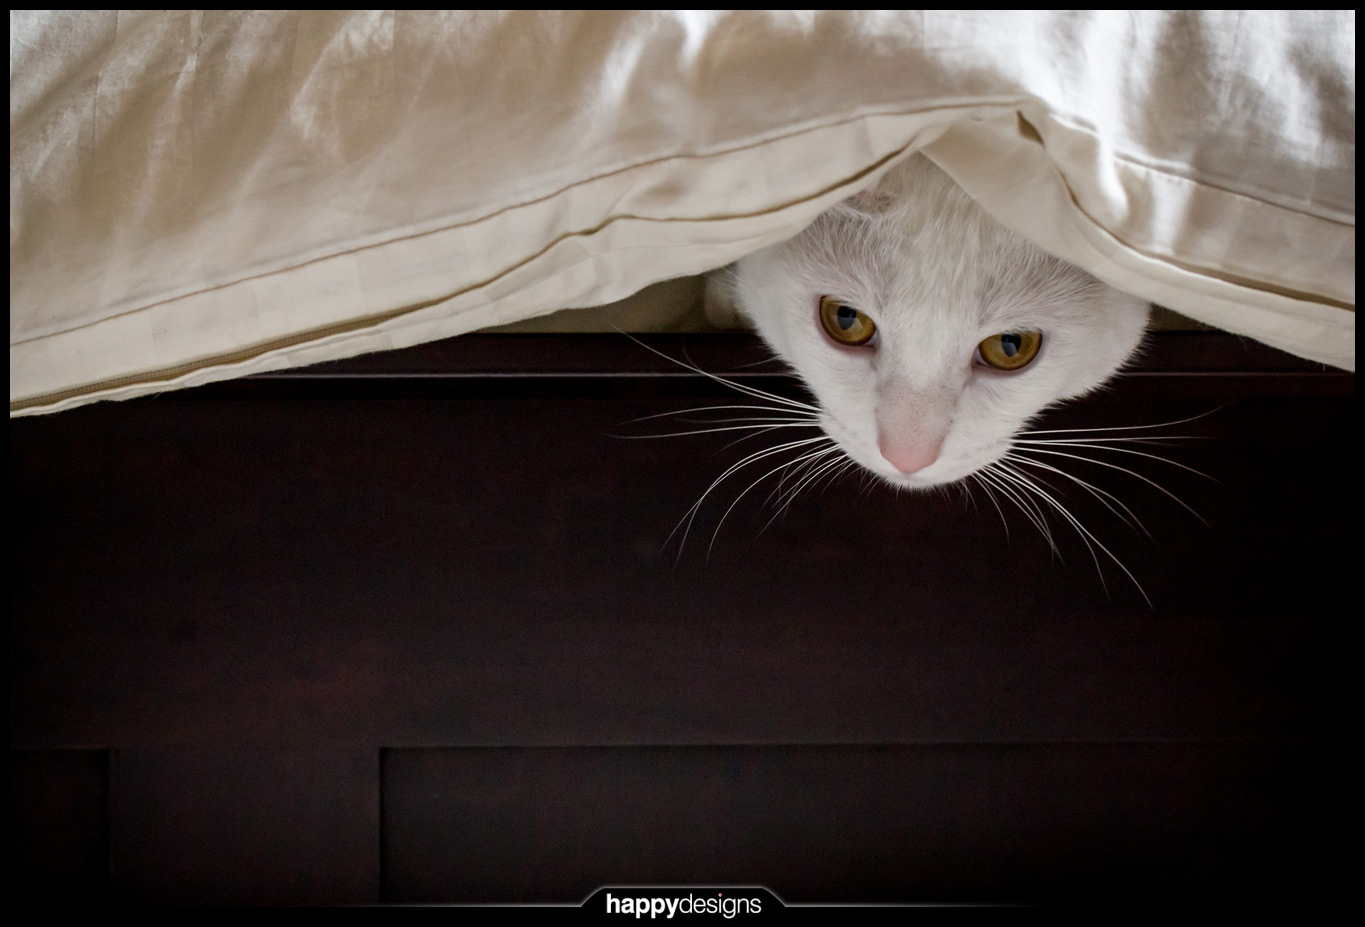 20131001 - Dasher under the covers